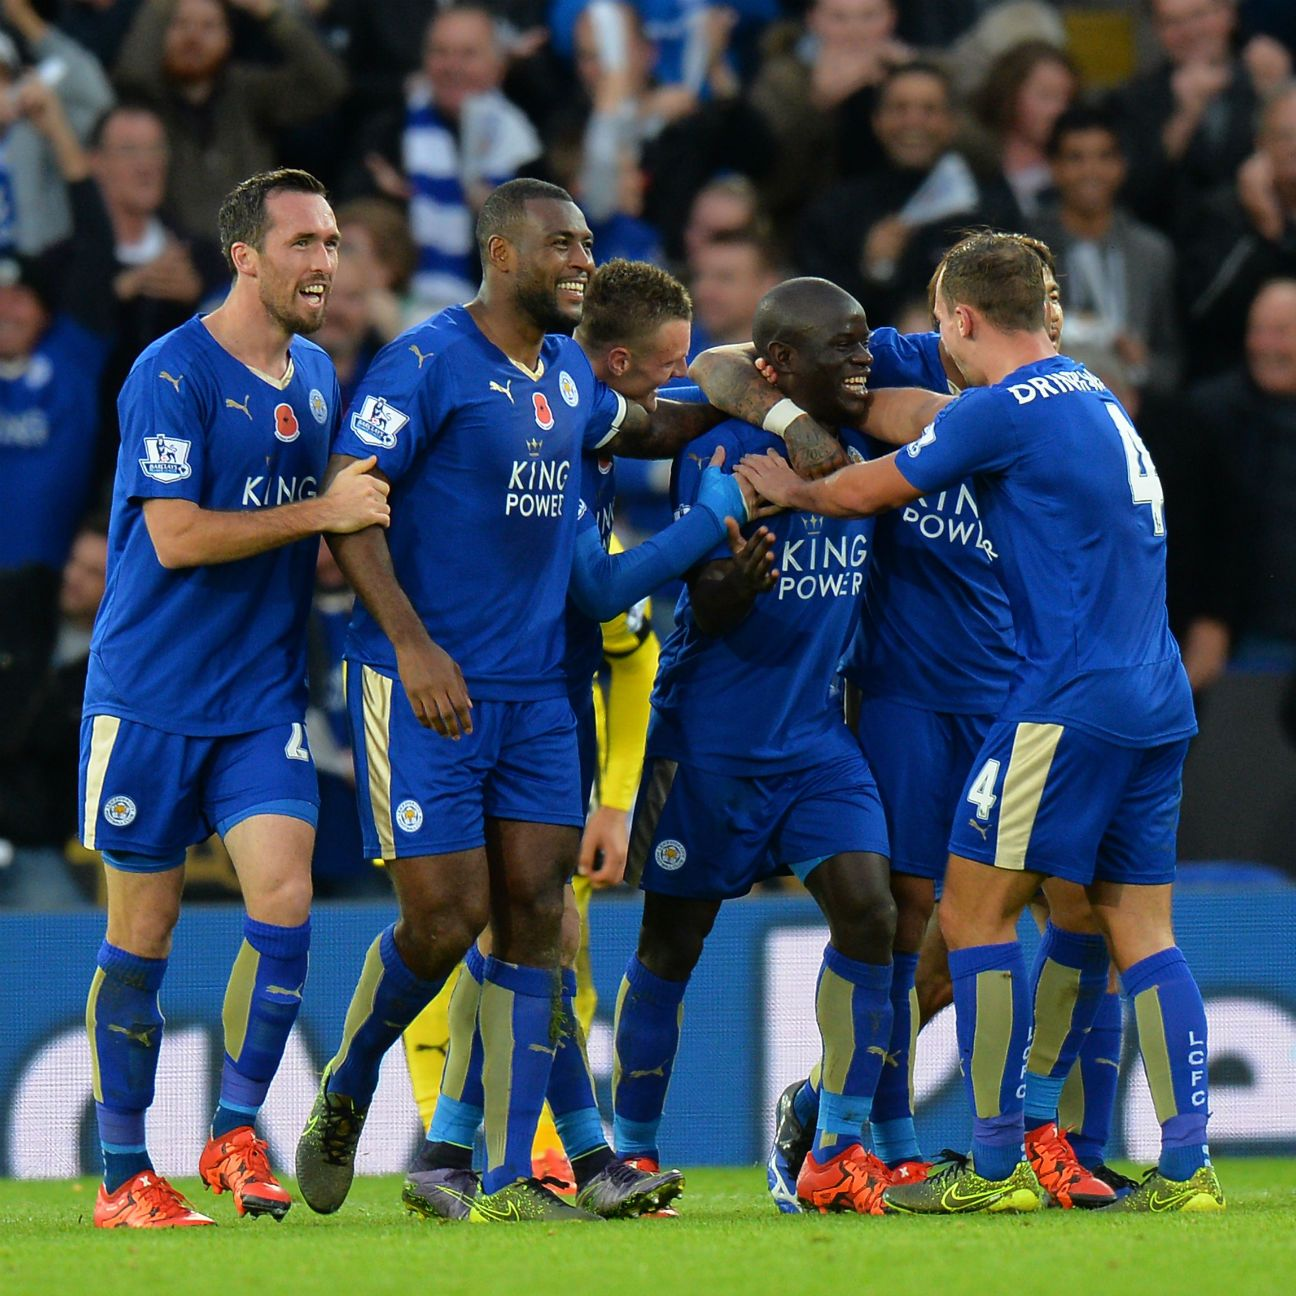 Leicester City's five-match unbeaten streak will be put to the test on Saturday at St James' Park.